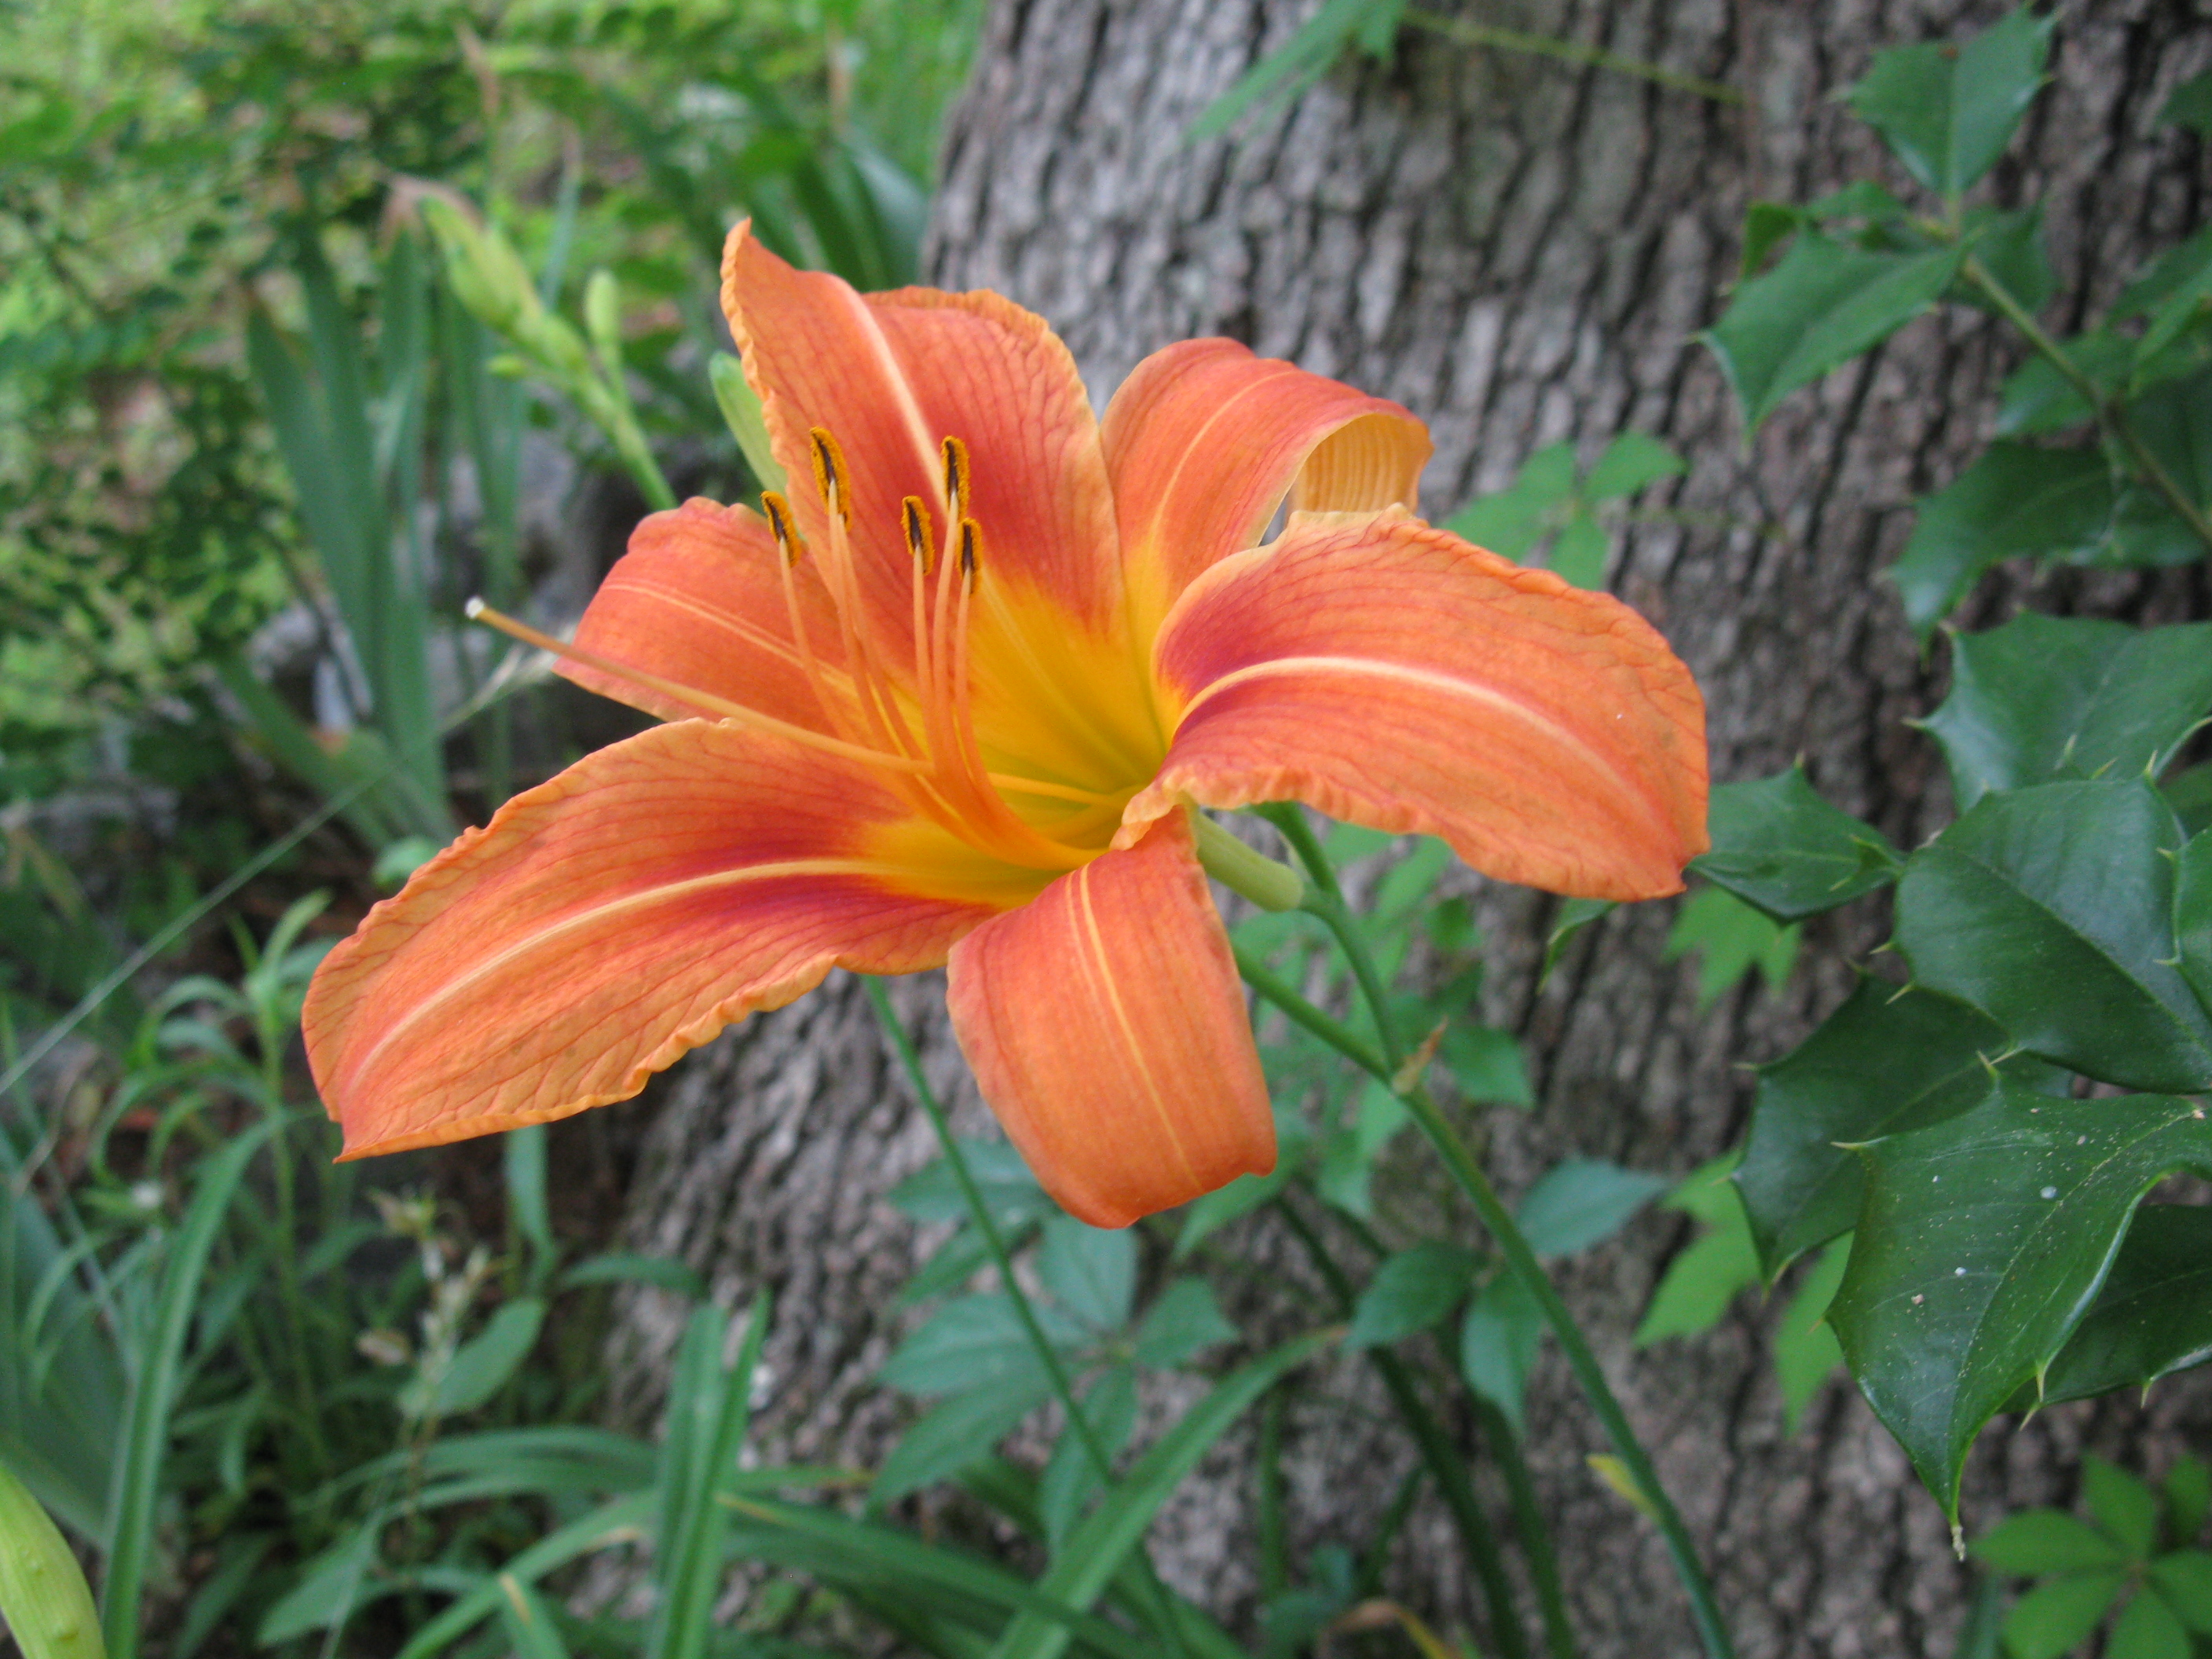 I hate orange lilies rachel marsom this wasnt always the case a few weeks ago i stood in the big lots gardening aisle and held two bulb boxes in my hands day lily bulbs were on sale for izmirmasajfo